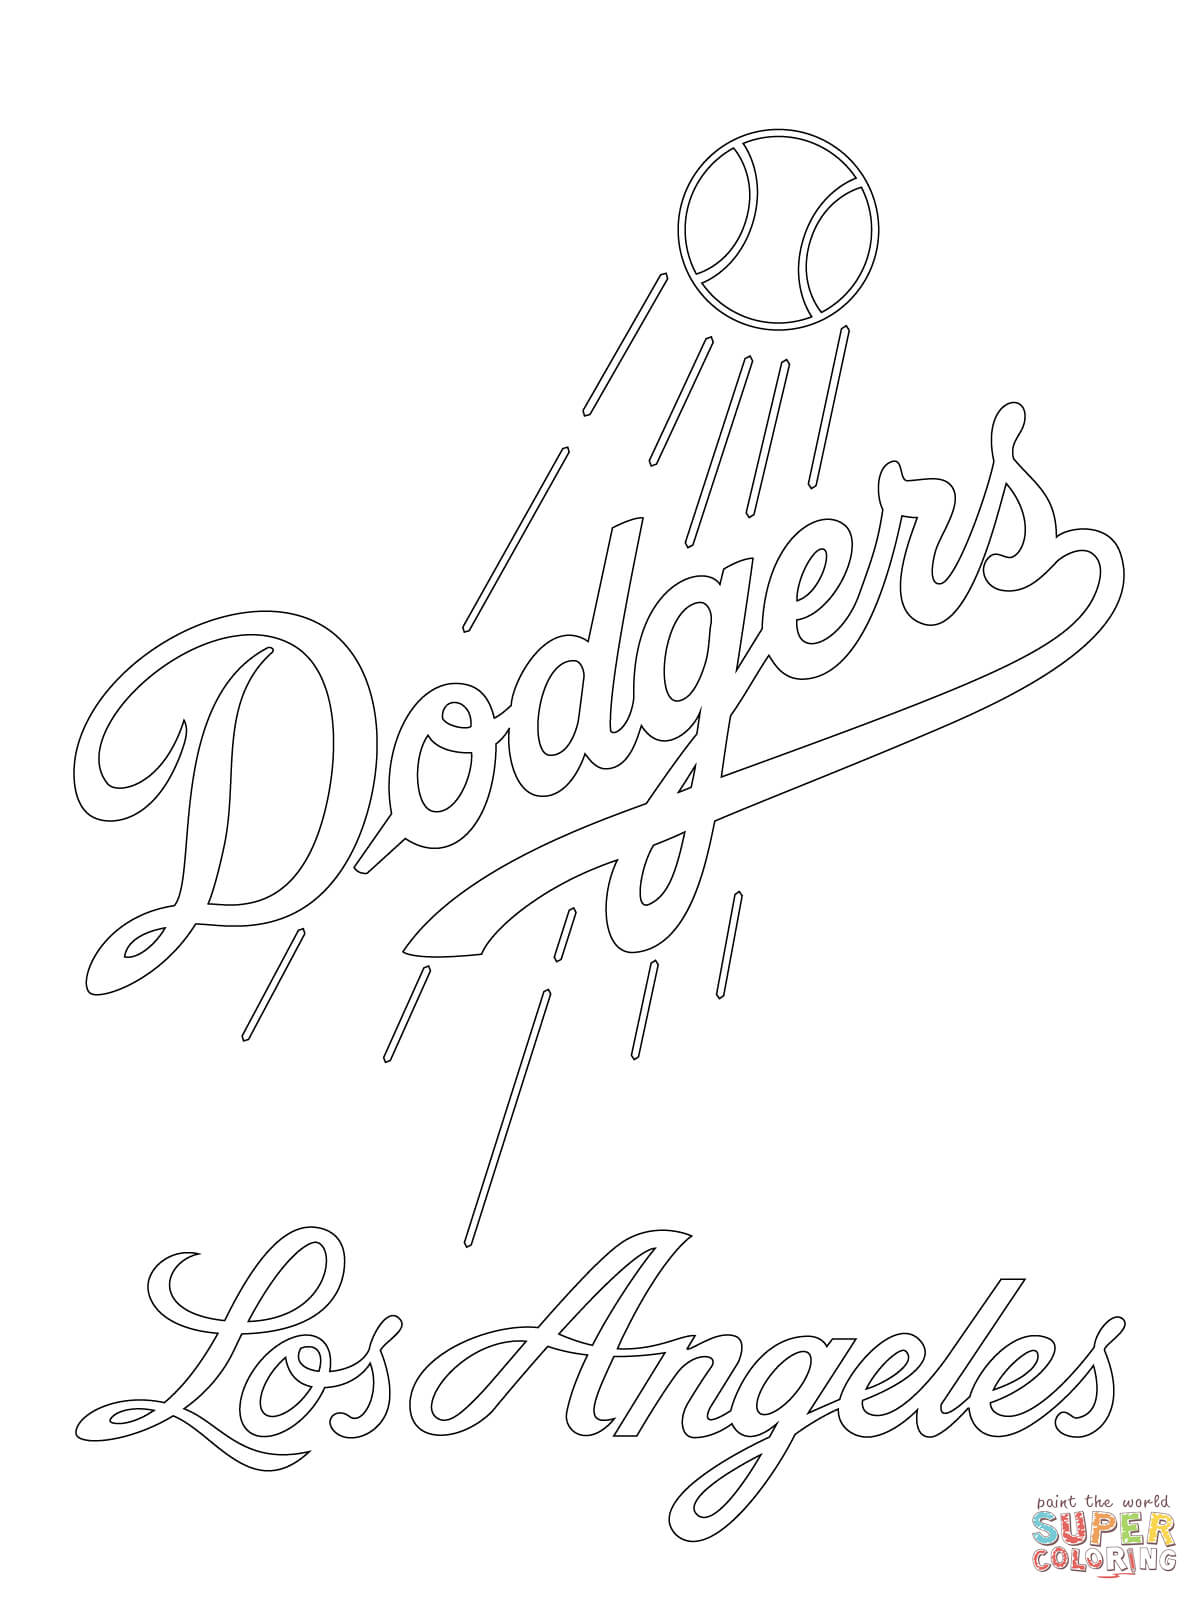 lakers logo coloring pages - photo#21